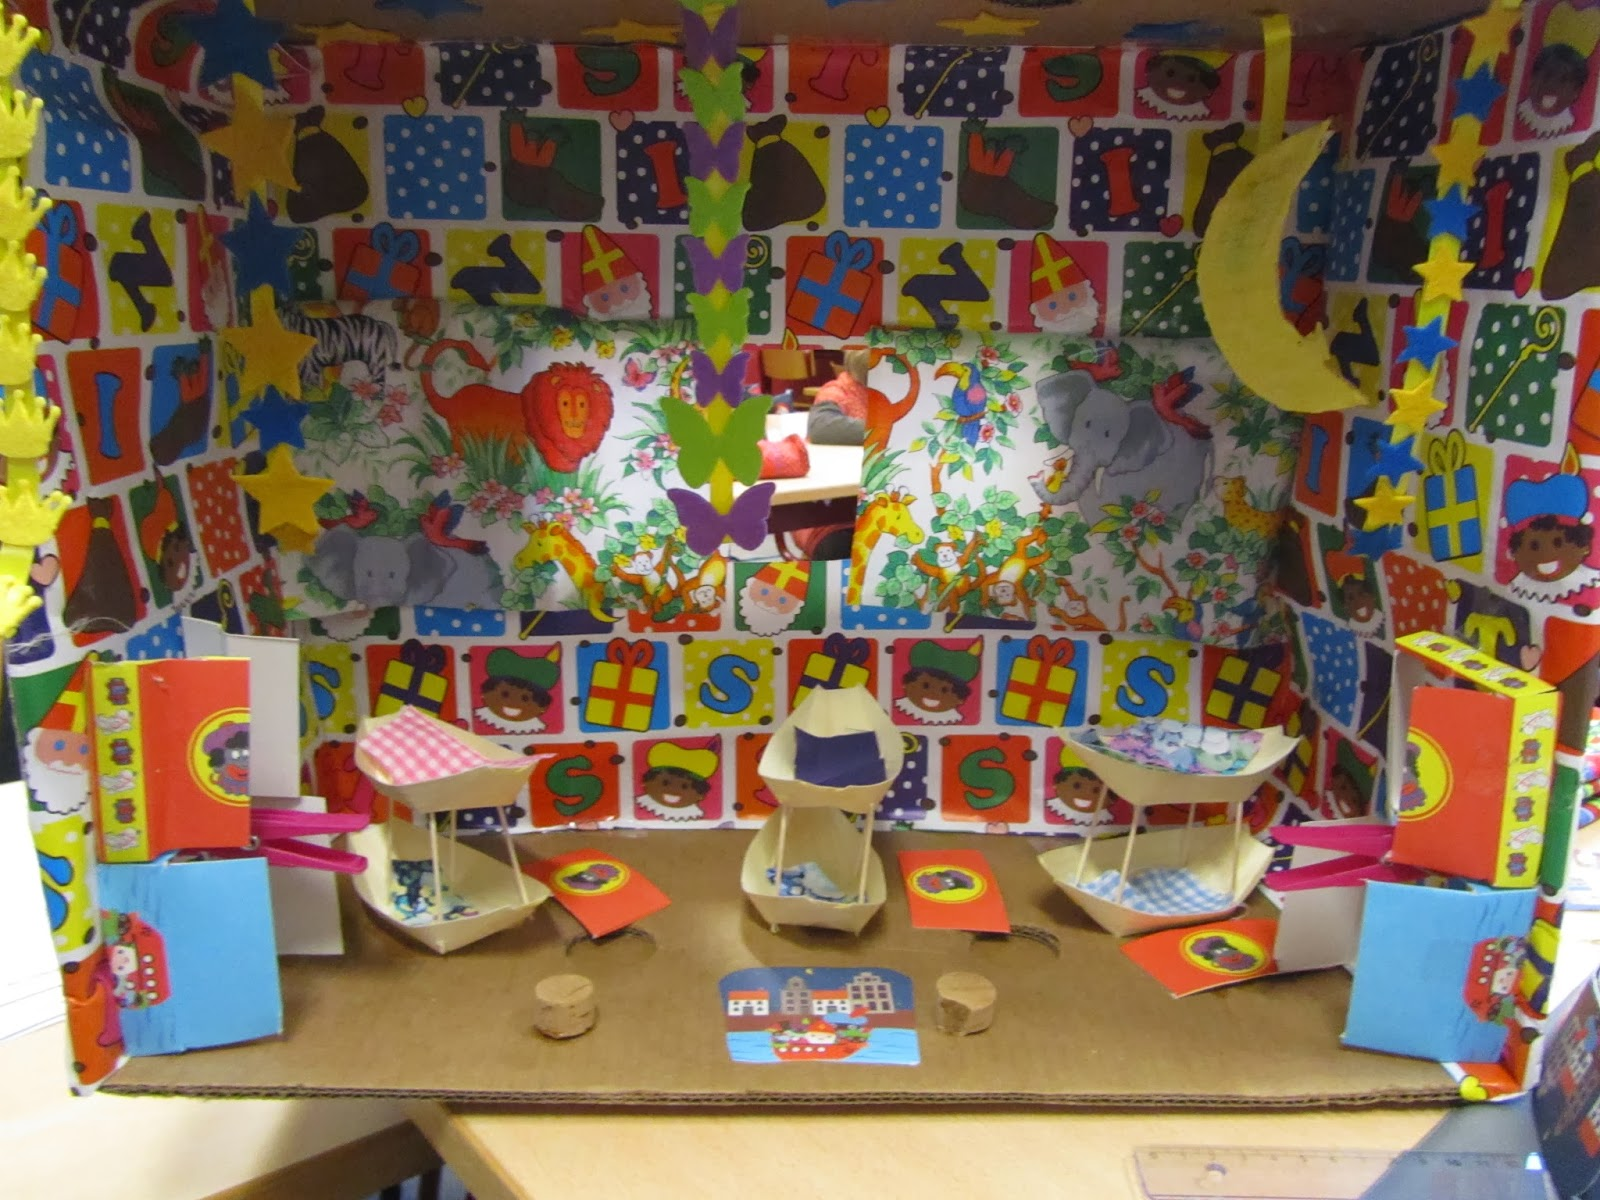 Jungle Thema Slaapkamer : Jungle book klas 2b: slaapkamer zwarte piet